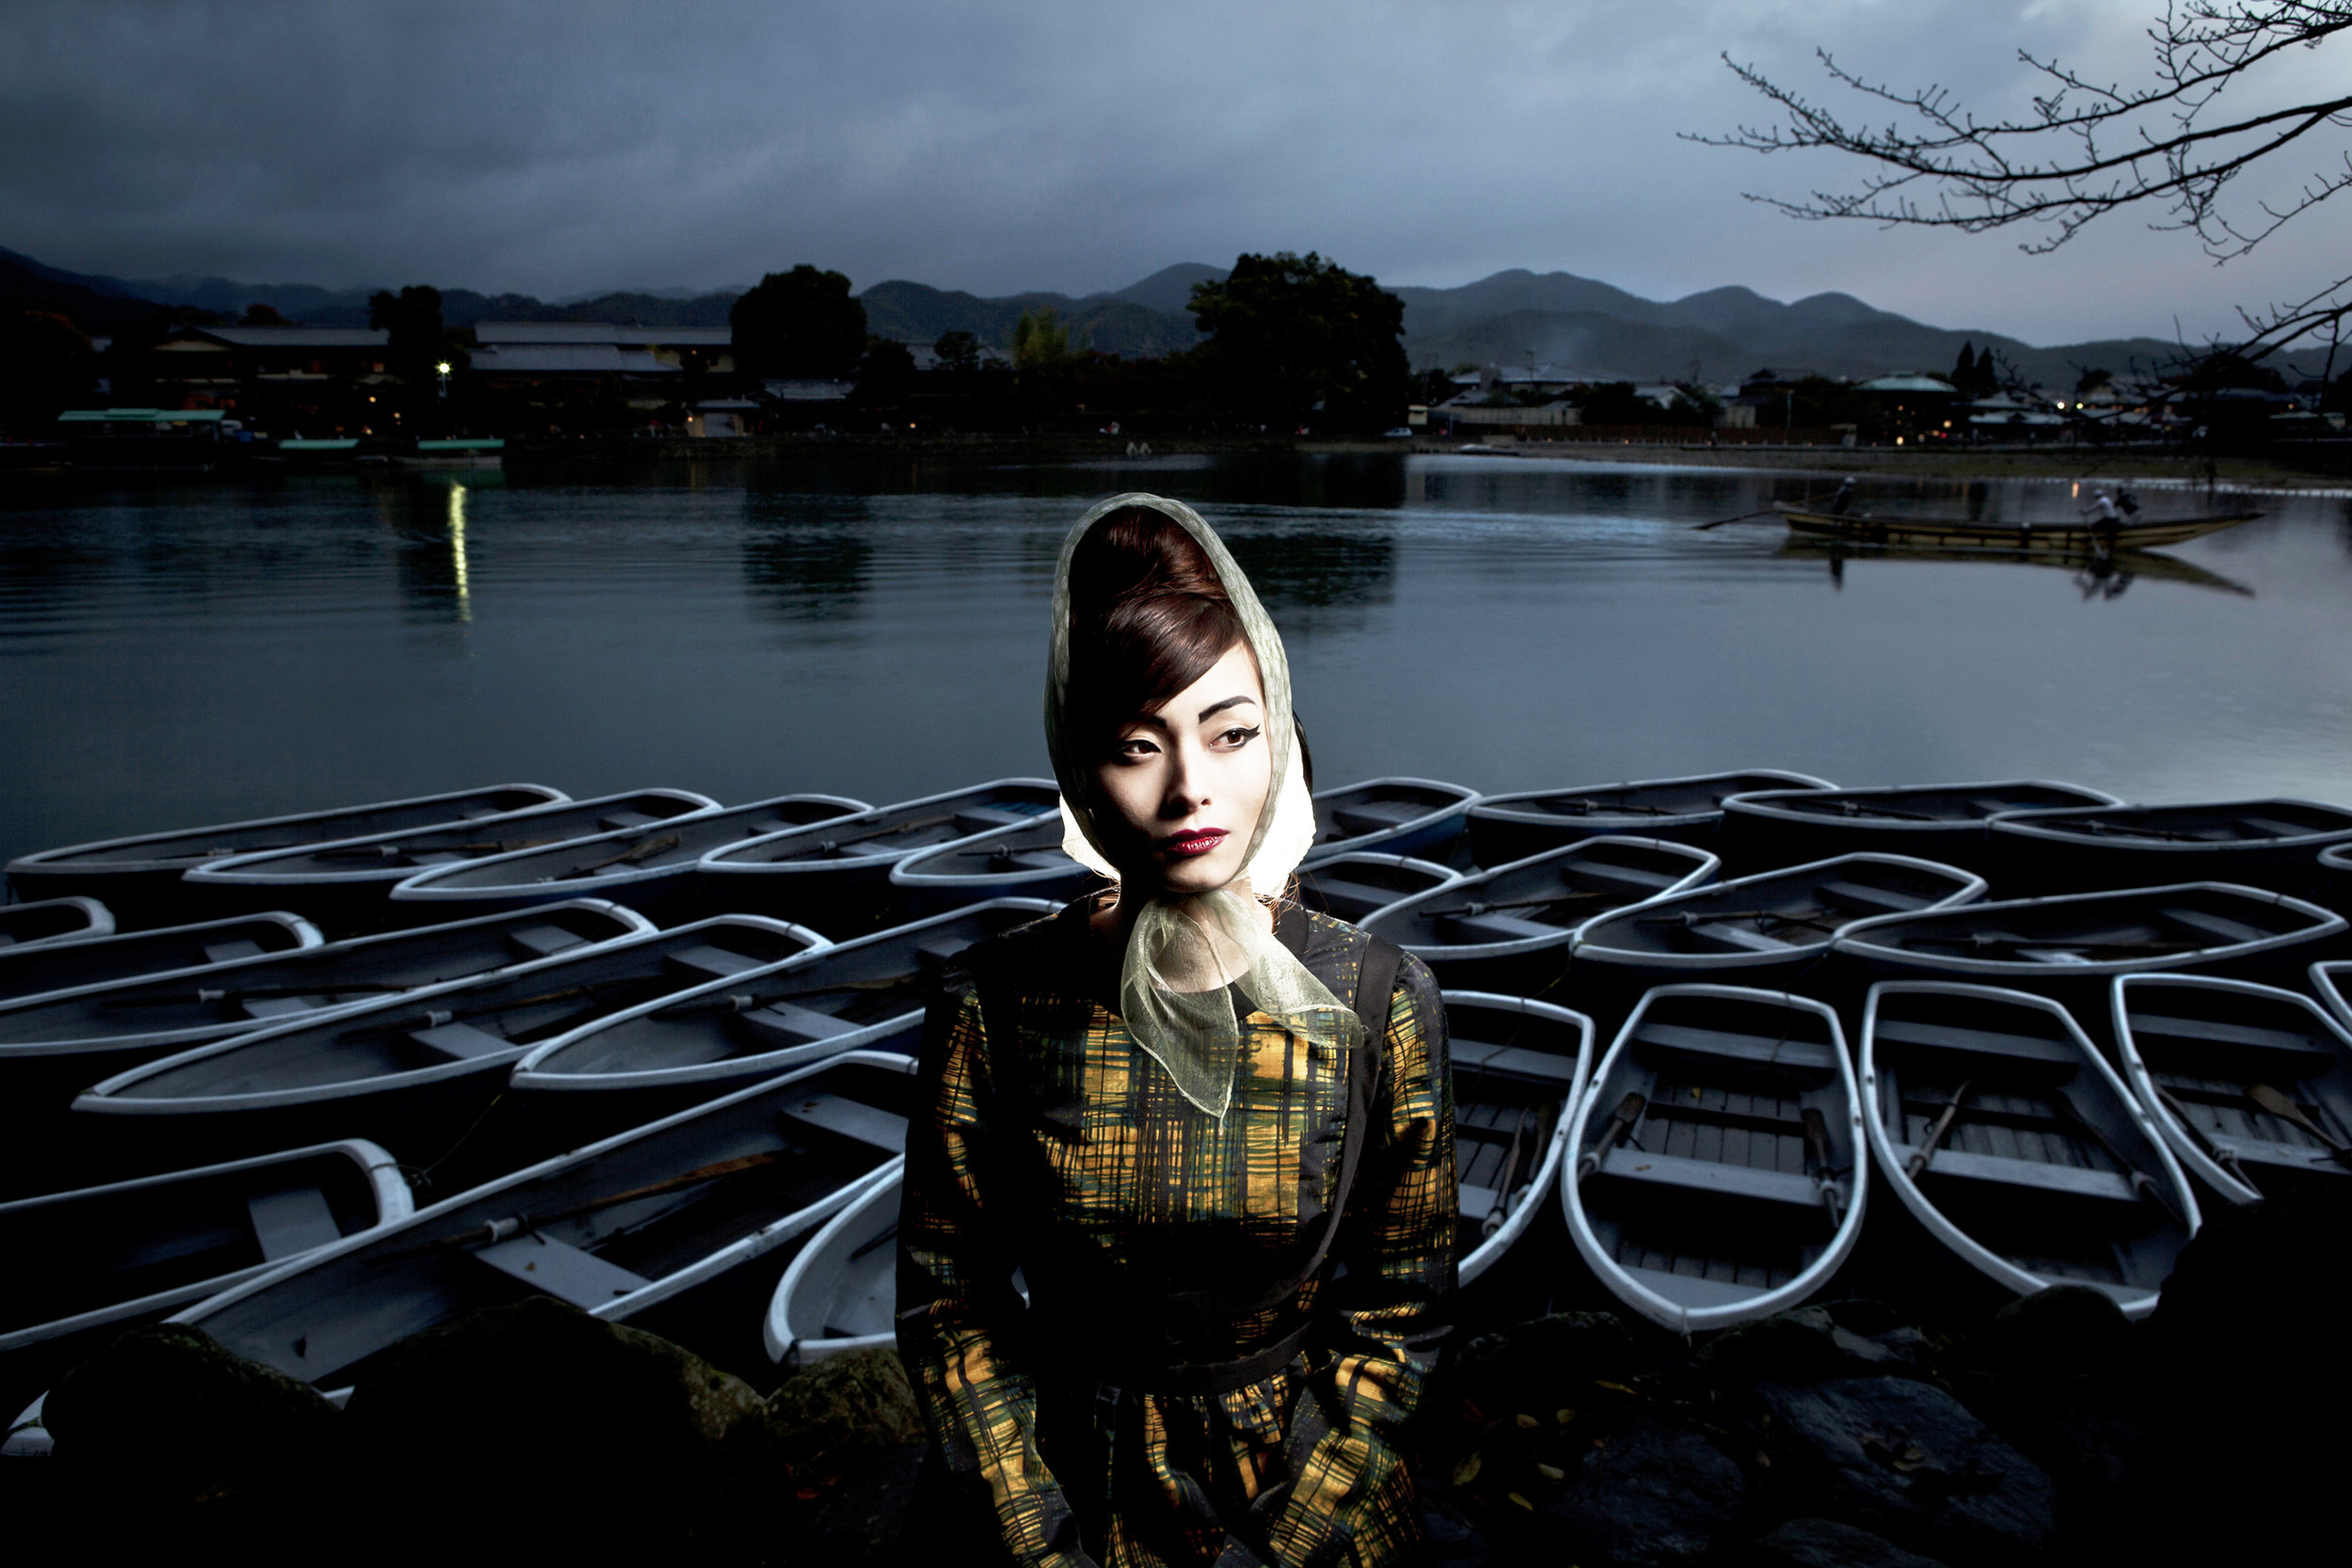 Formento and Formento. Mai I, Arashyama, Japan, 2013. Archival pigment print, ed. 1/12, 30 x 40 in.